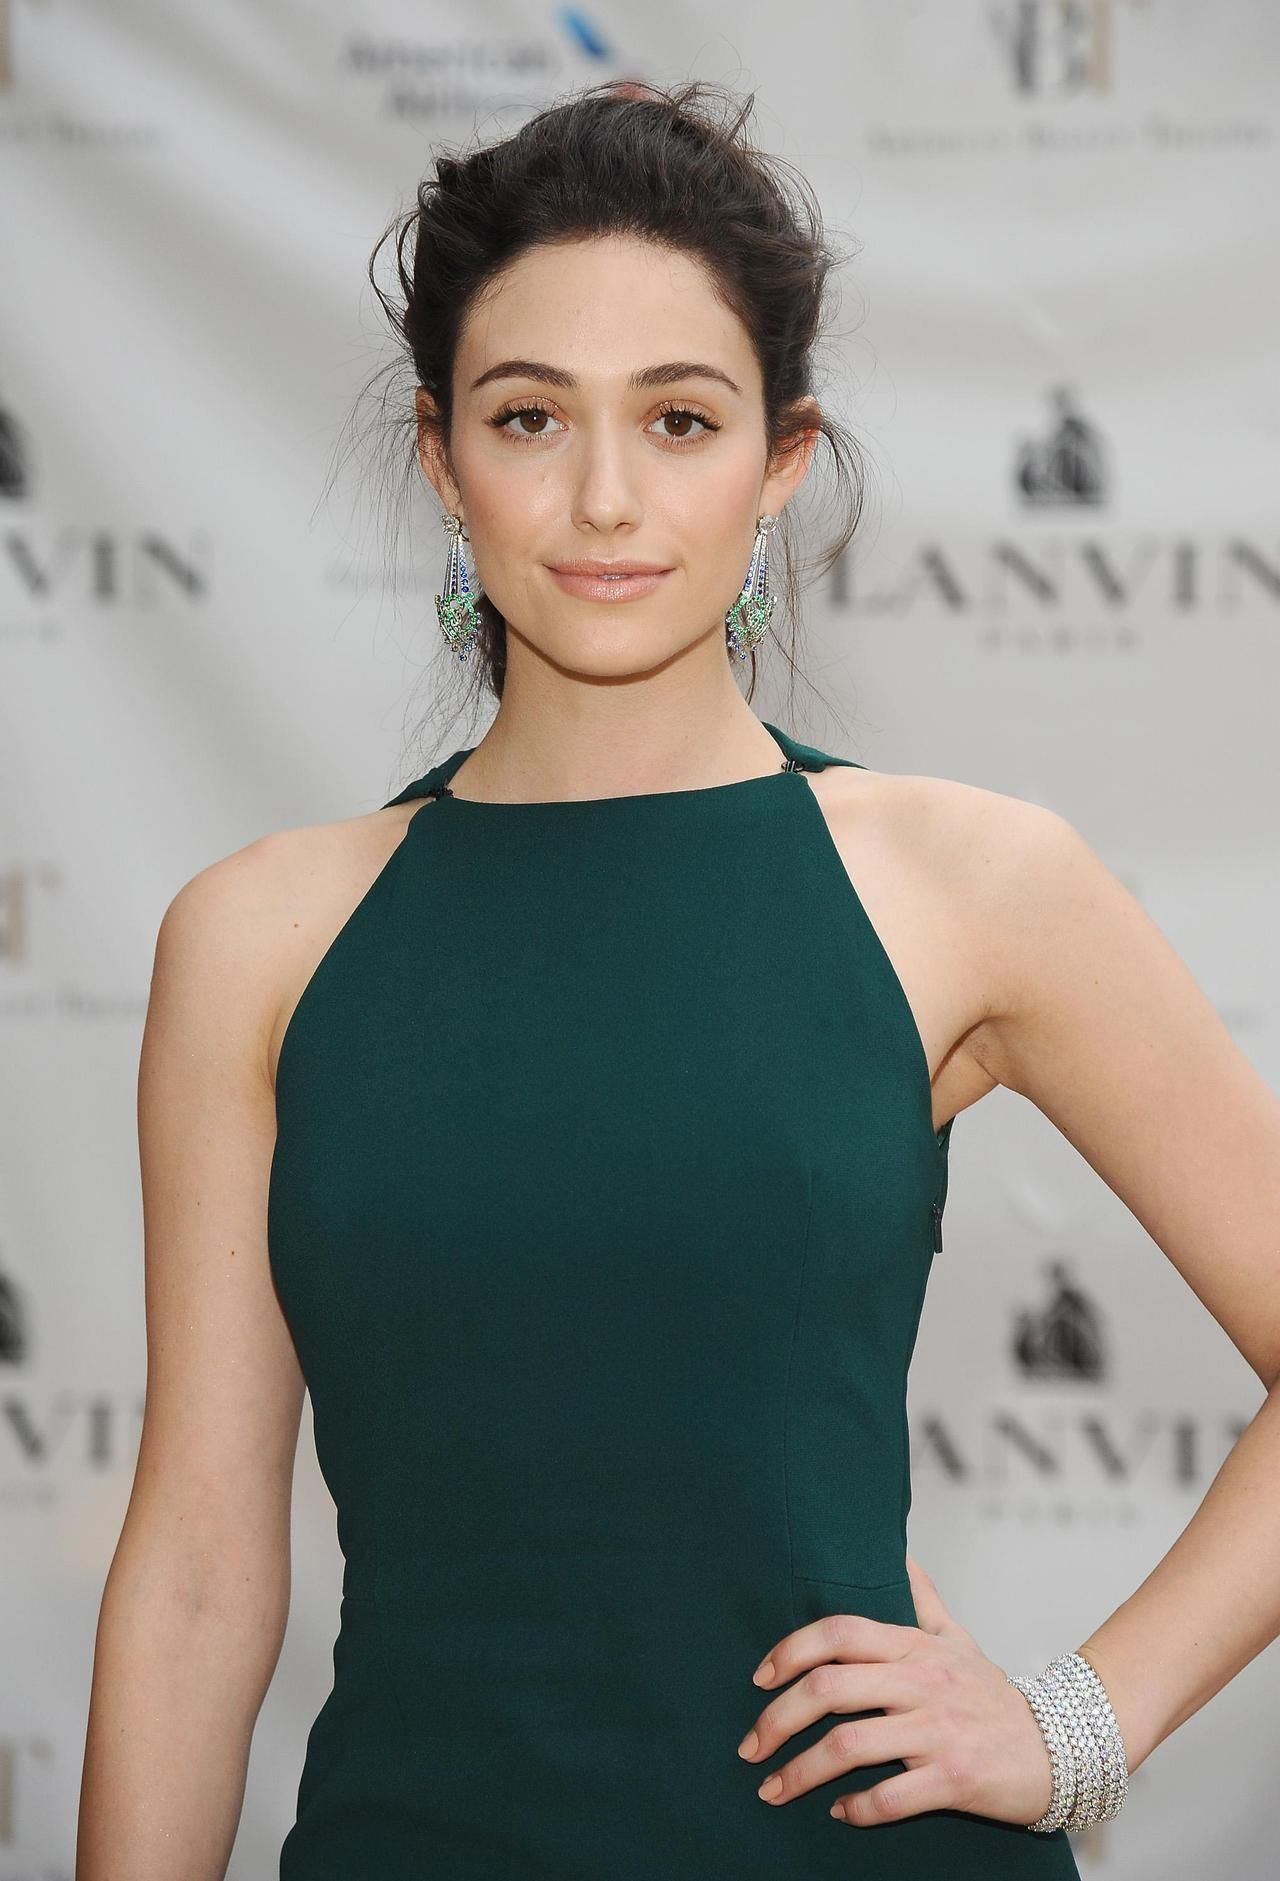 emmy rossum outfits 50+ best outfits Page 92 of 100